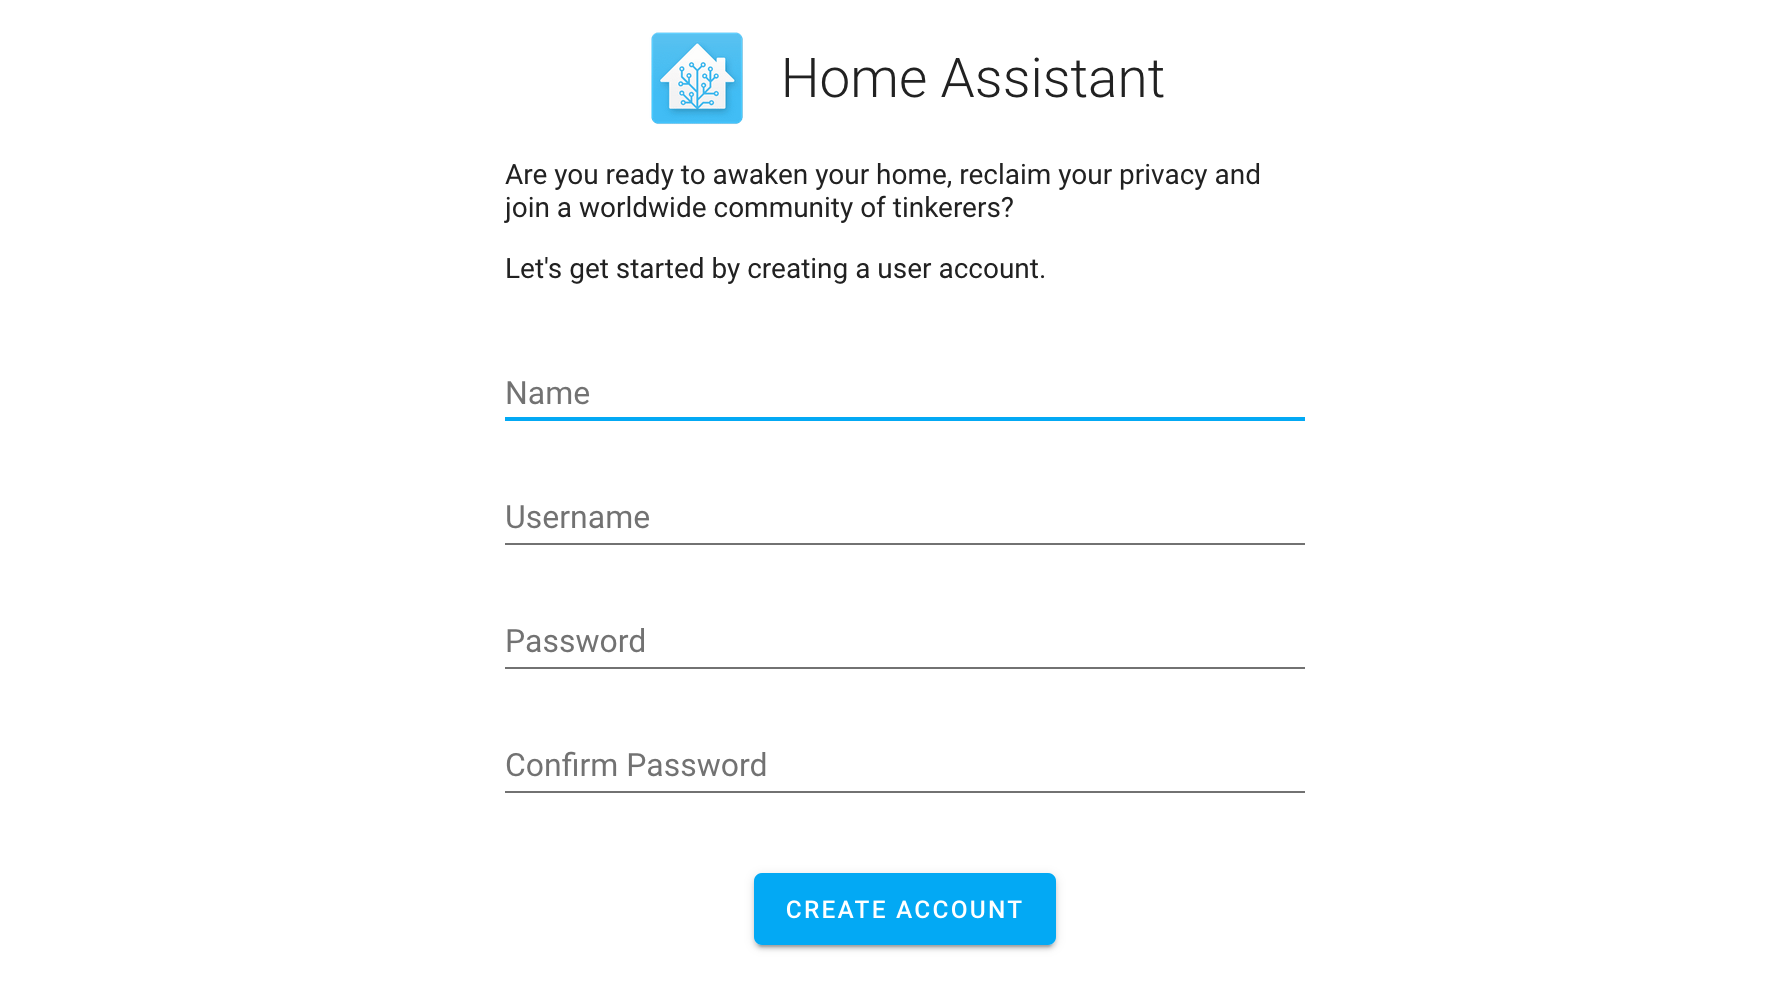 Create Home Assistant User